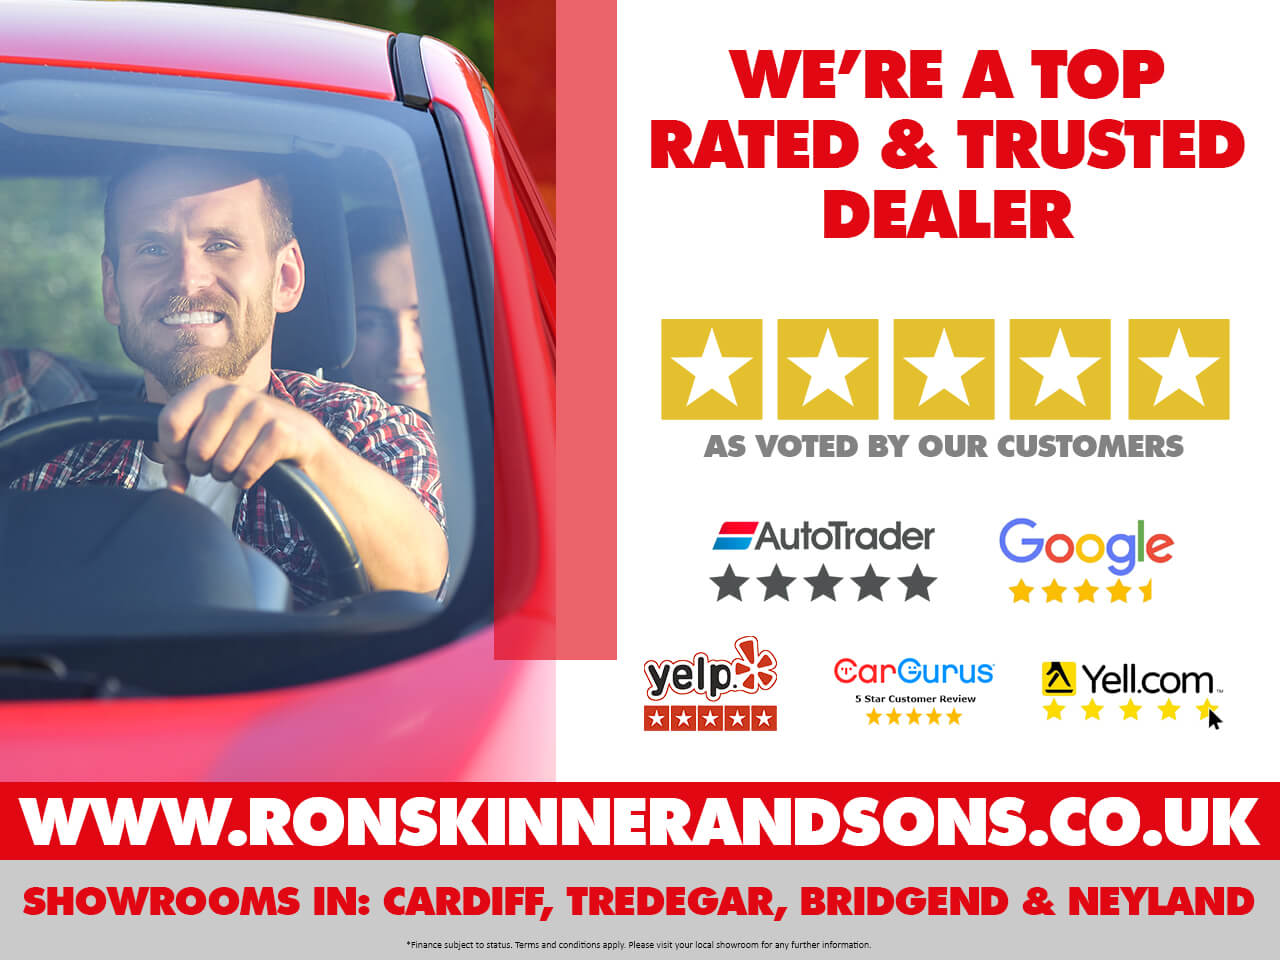 FORD MONDEO at Ron Skinner and Sons